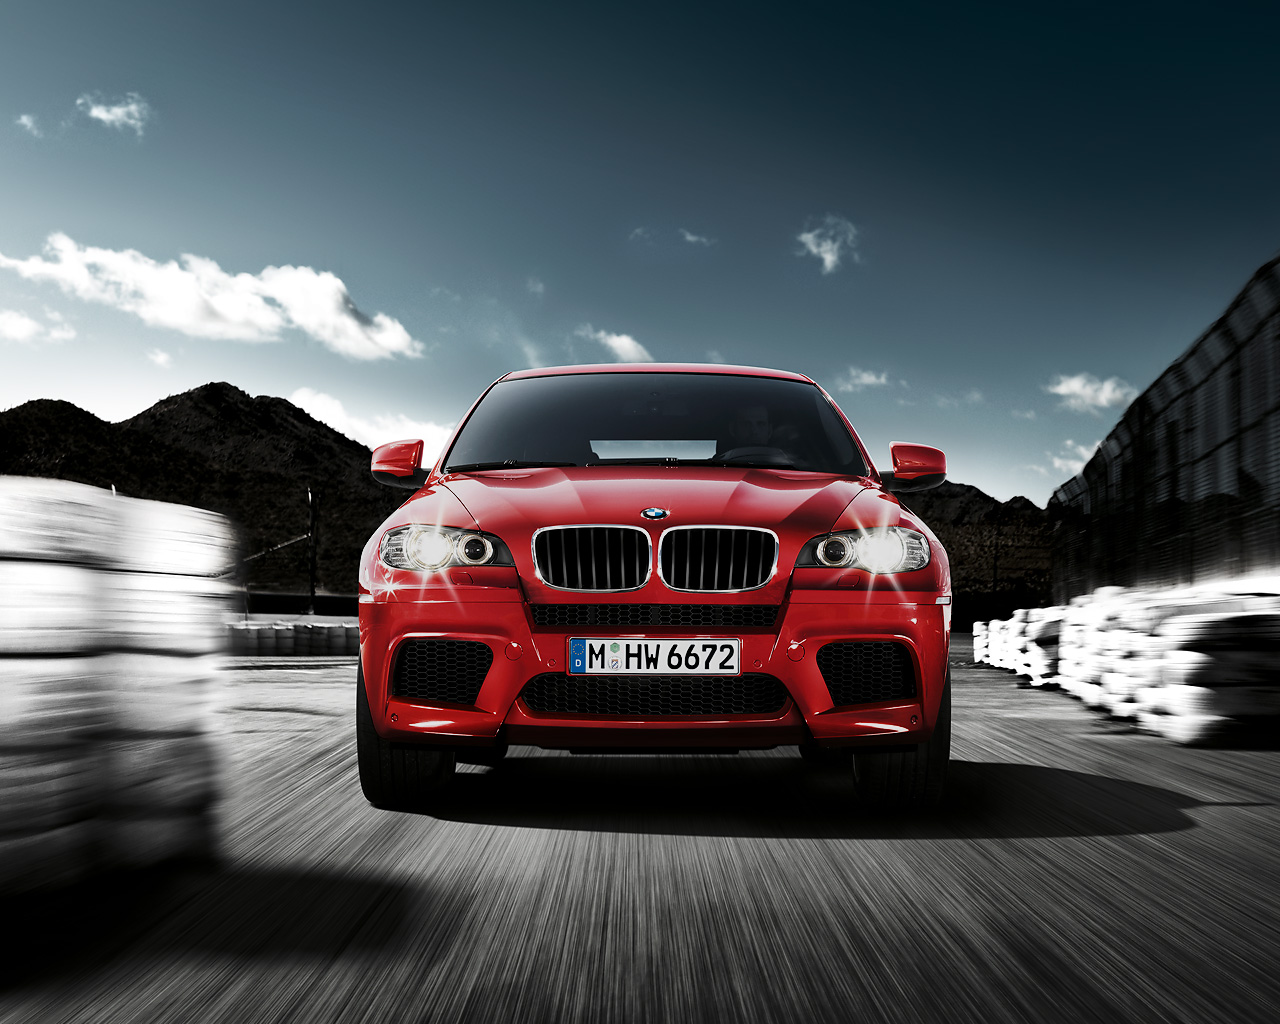 car-model-2012: Cool Bmw cars wallpapers